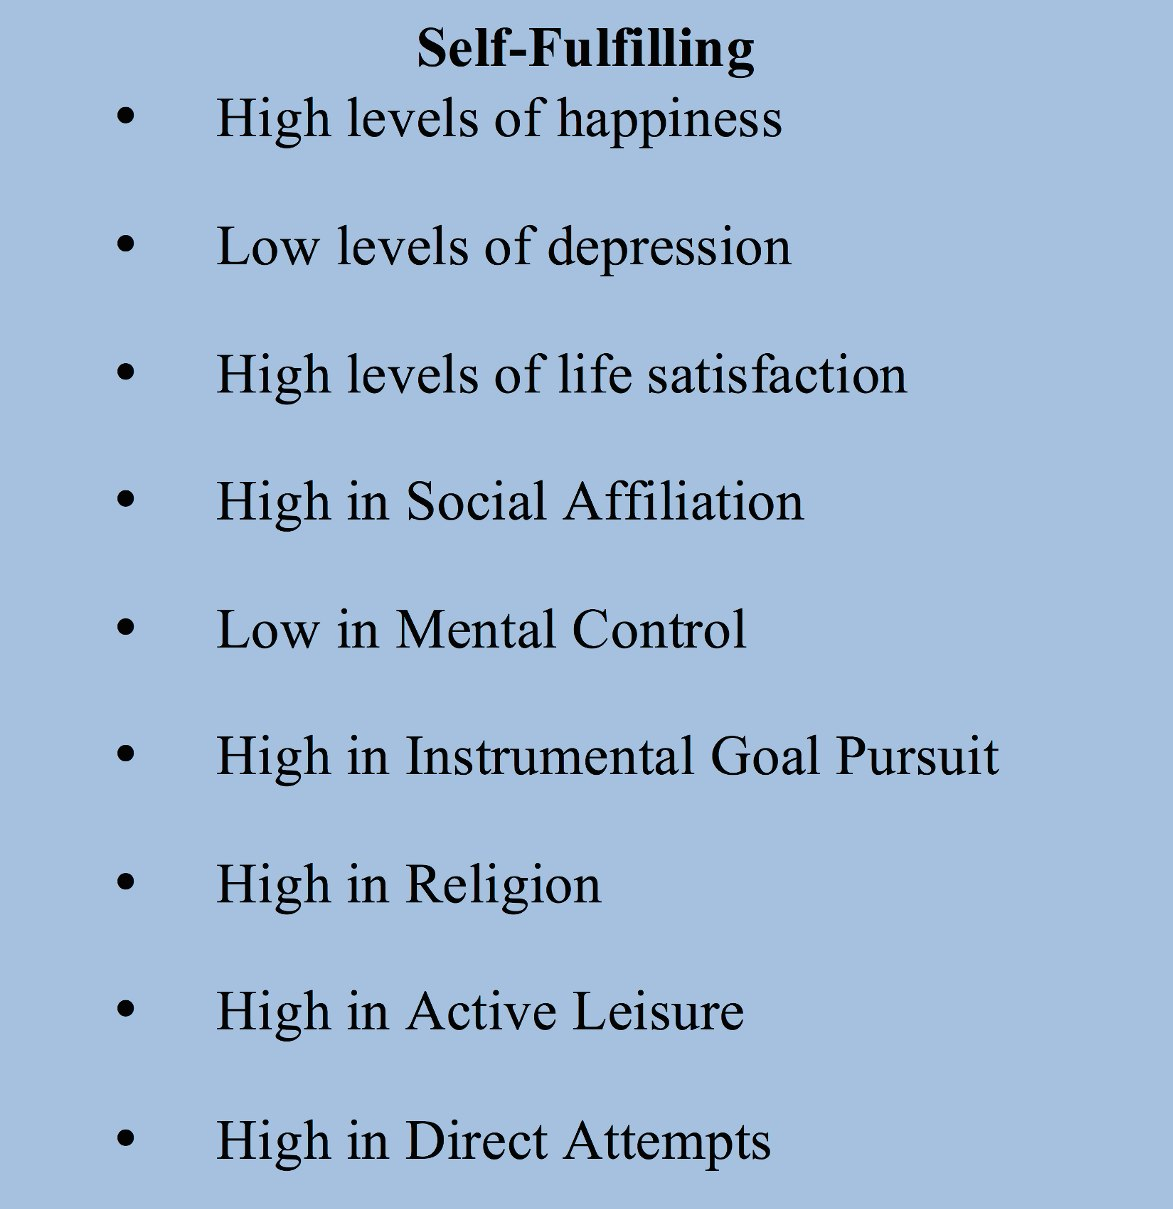 Positive emotion influences a depressive-to-happy state and increases life satisfaction